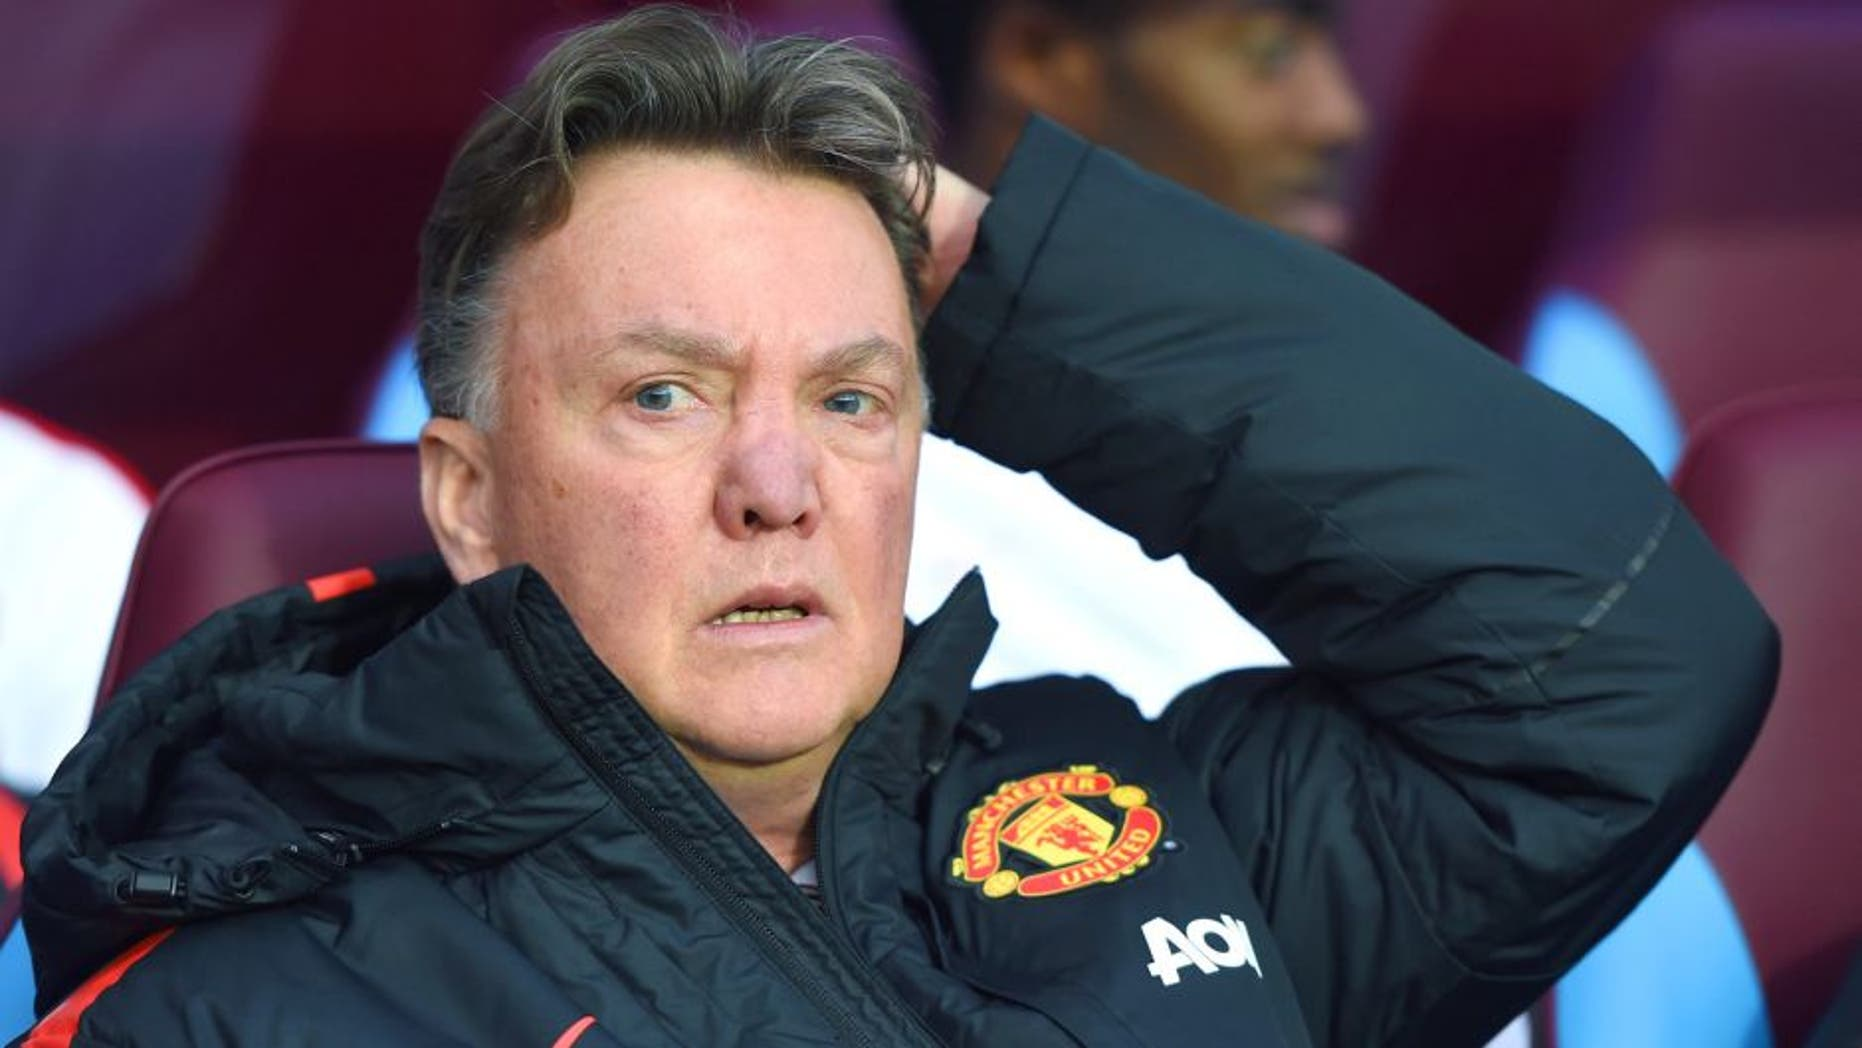 BIRMINGHAM, ENGLAND - DECEMBER 20: Manager Louis van Gaal of Manchester United looks on during the Barclays Premier League match between Aston Villa and Manchester United at Villa Park on December 20, 2014 in Birmingham, England. (Photo by Michael Regan/Getty Images)